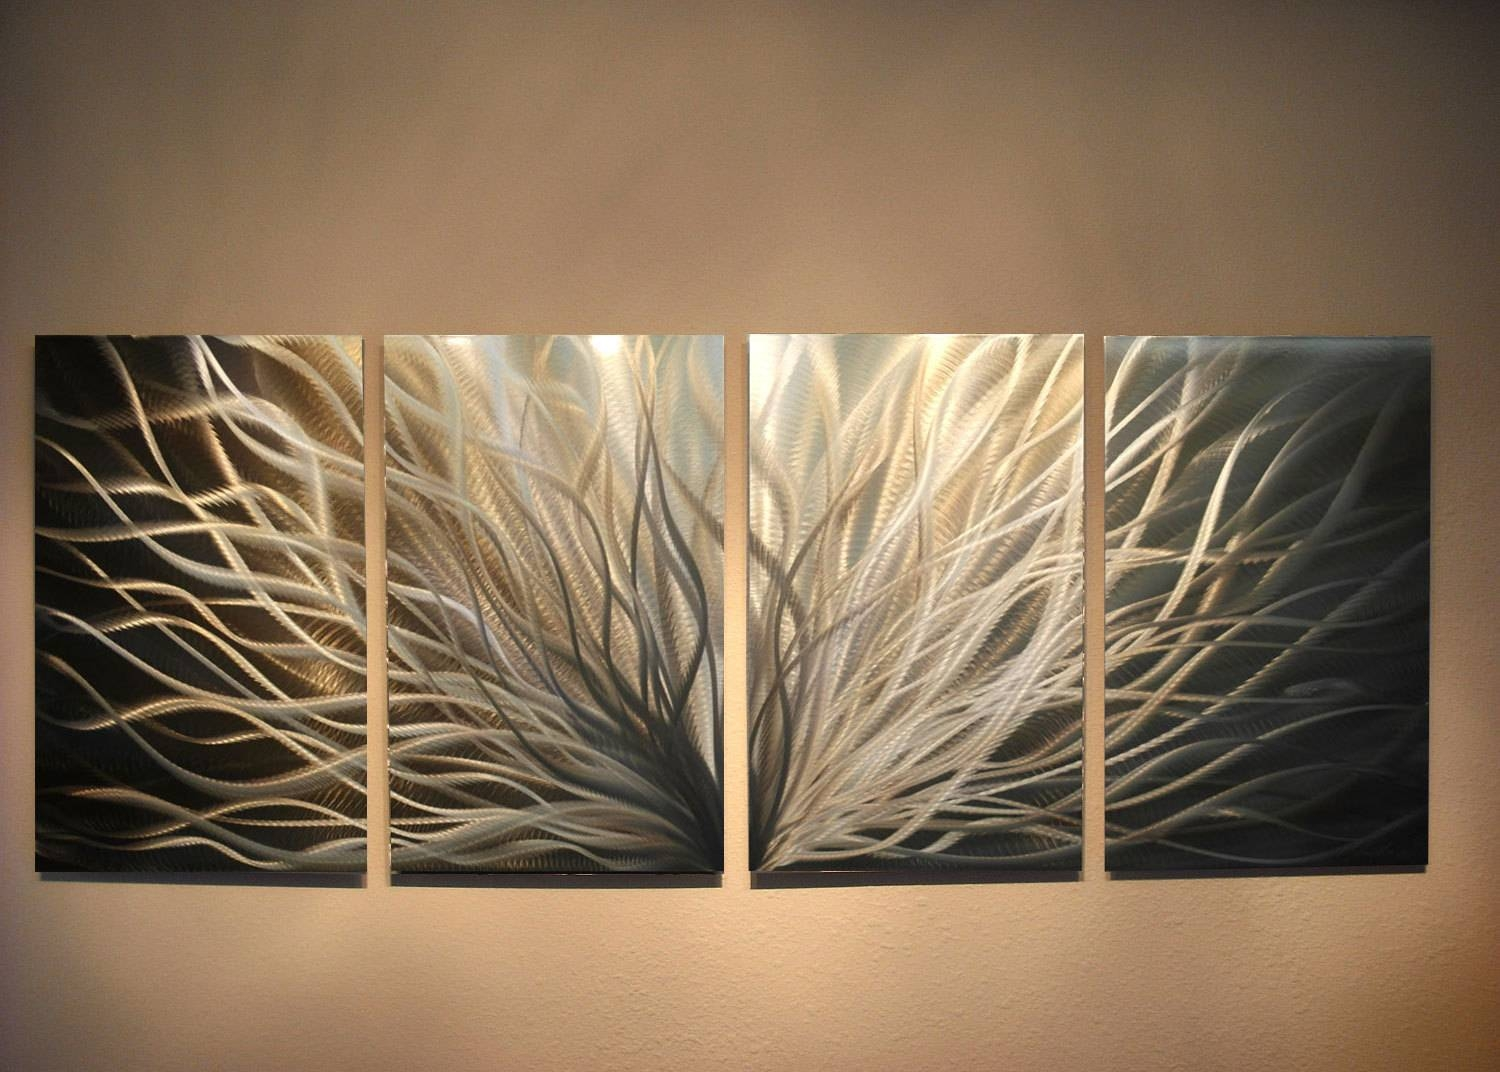 Metal Art Wall Art Decor Aluminum Abstract Contemporary Modern Inside 2017 Contemporary Metal Wall Art Decor (View 11 of 20)